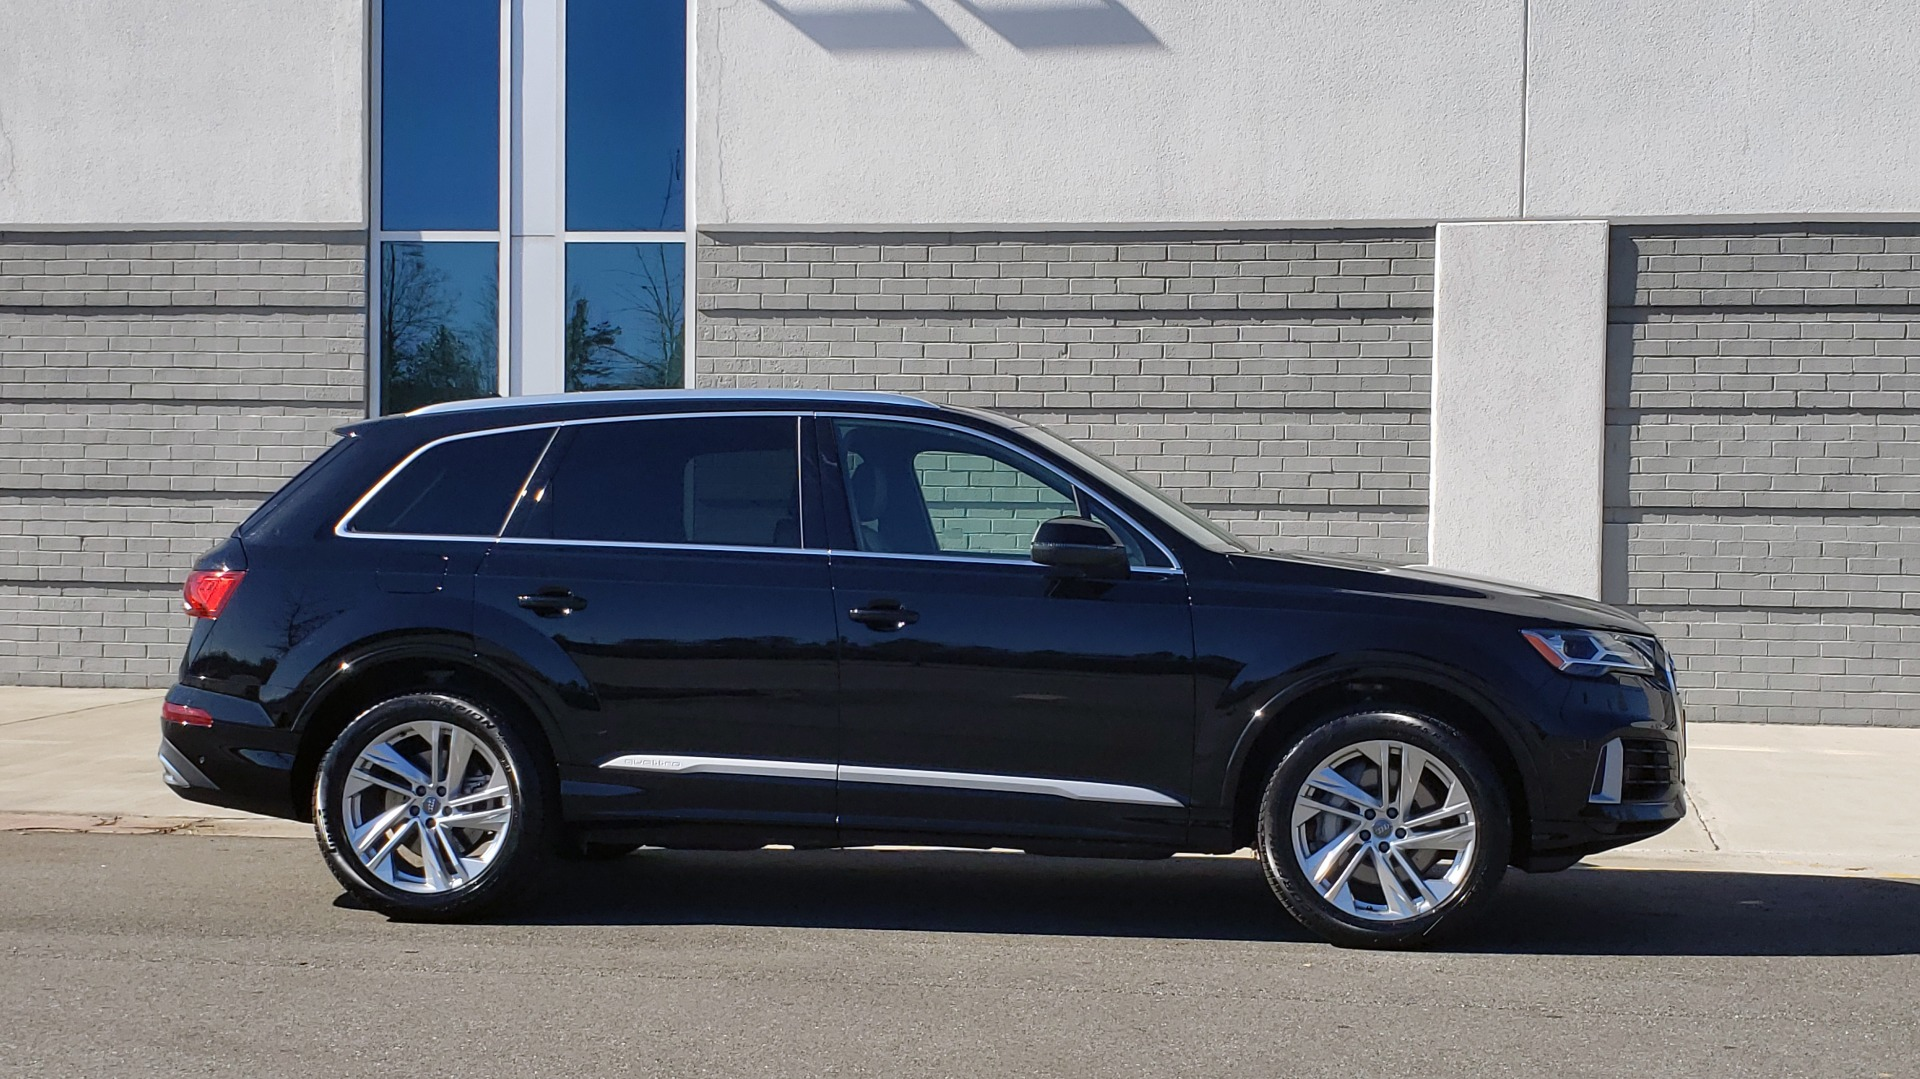 Used 2020 Audi Q7 PREMIUM PLUS / NAV / SUNROOF / 3-ROW / REARVIEW for sale Sold at Formula Imports in Charlotte NC 28227 8